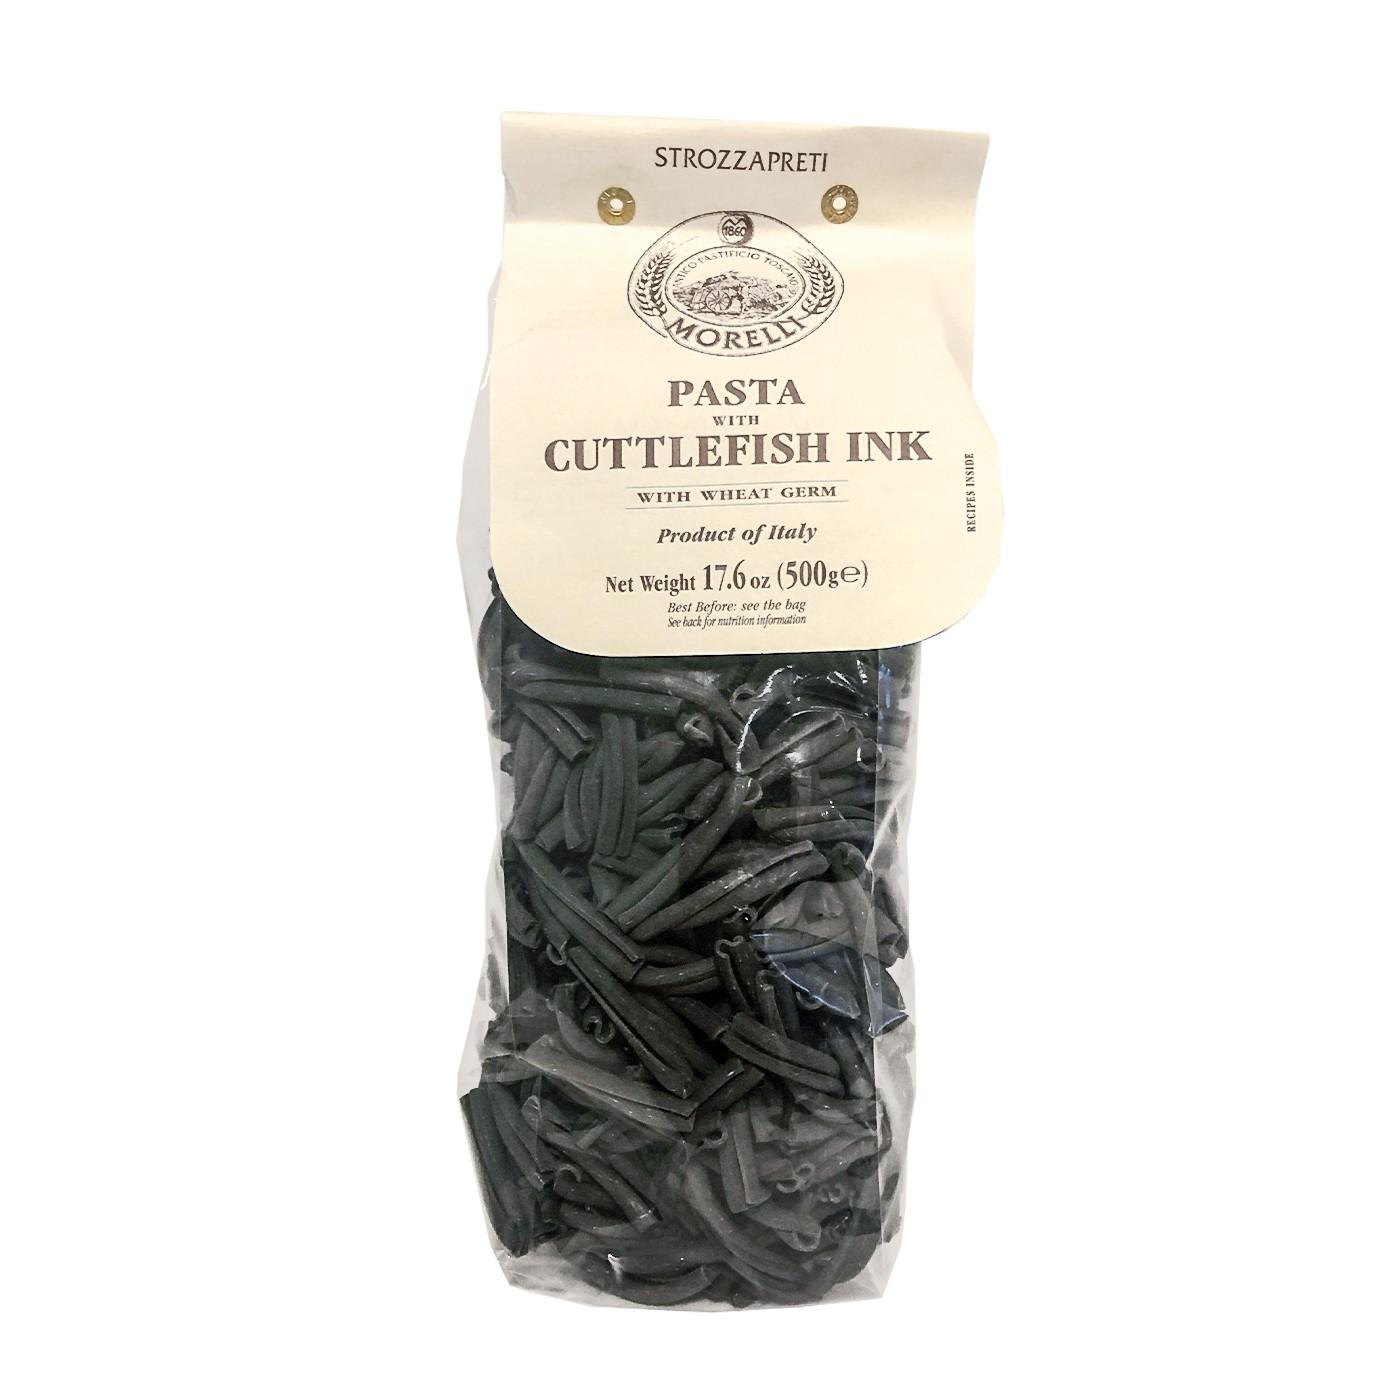 Strozzapreti Pasta with Cuttlefish Ink 17.6 oz